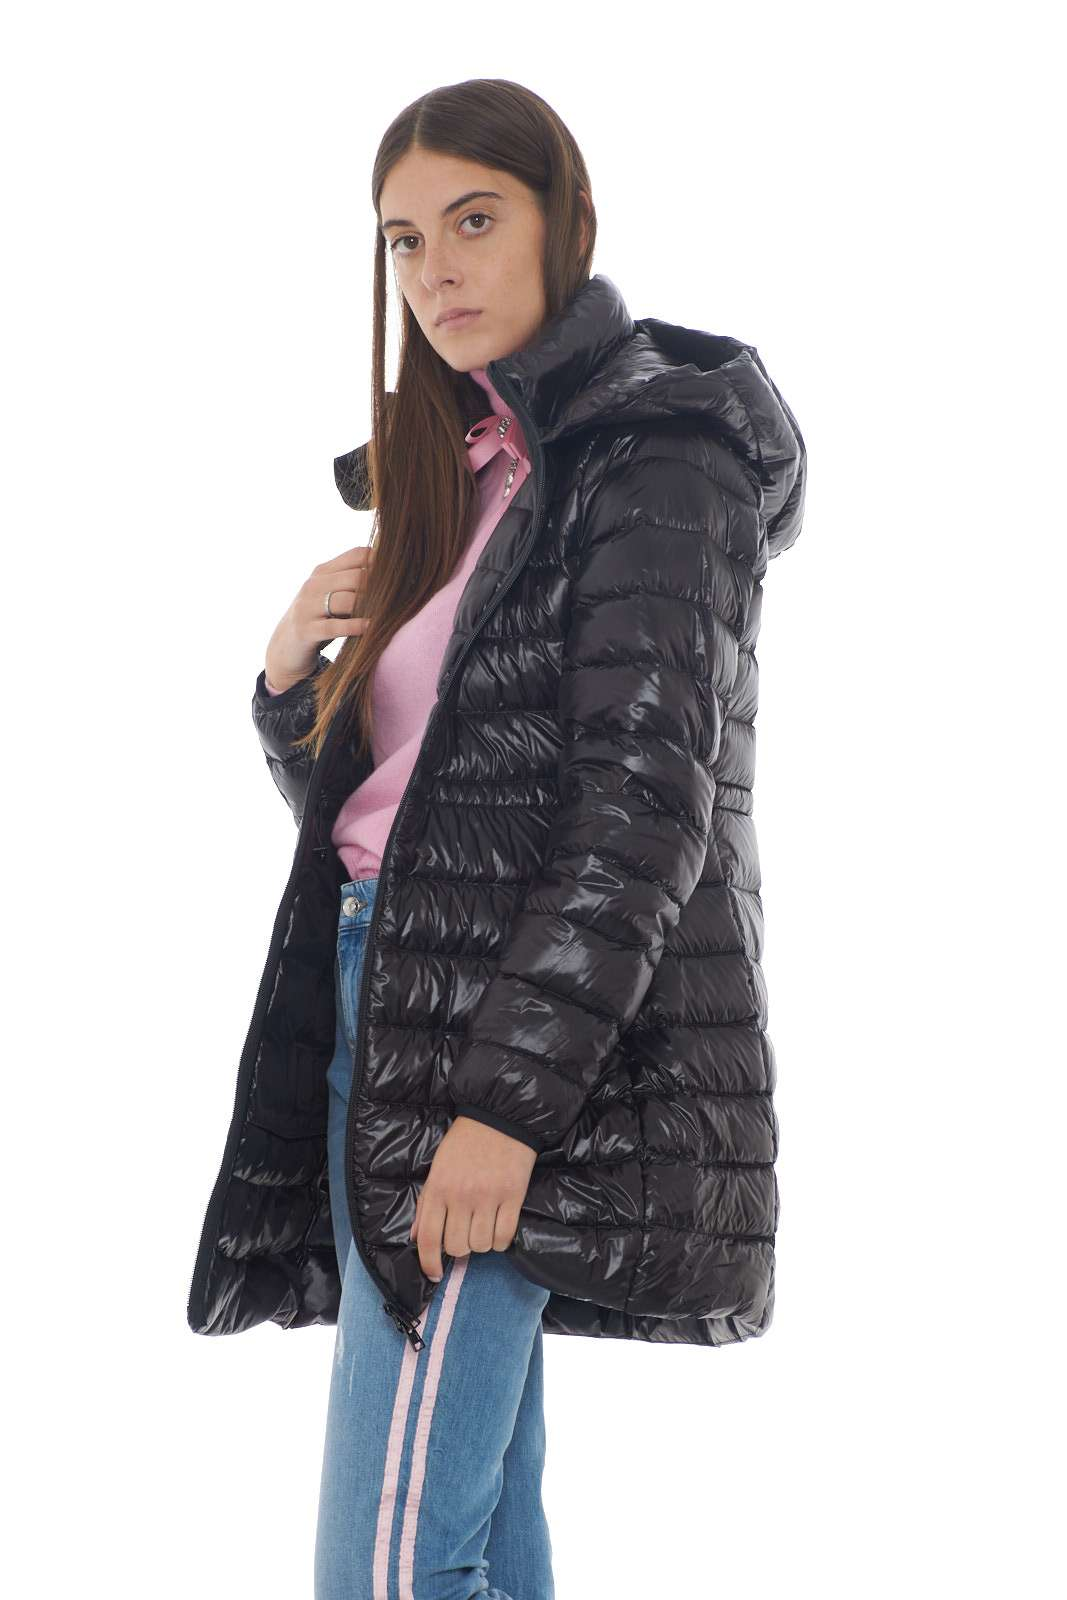 https://www.parmax.com/media/catalog/product/a/i/AI-outlet_parmax-parka-donna-Woolrich-WWCPS2785-F.jpg